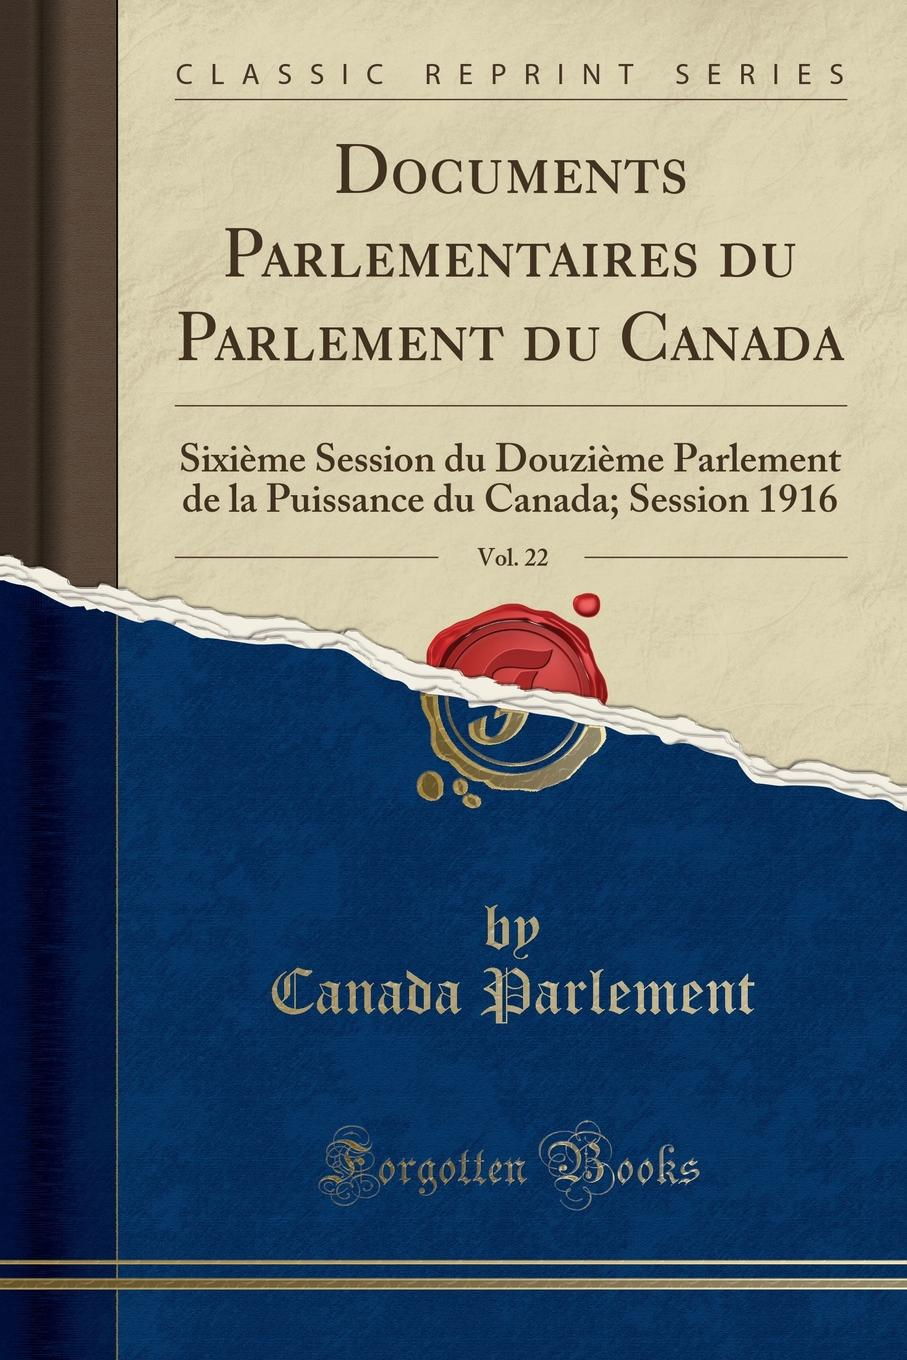 Canada Parlement Documents Parlementaires du Parlement du Canada, Vol. 22. Sixieme Session du Douzieme Parlement de la Puissance du Canada; Session 1916 (Classic Reprint)